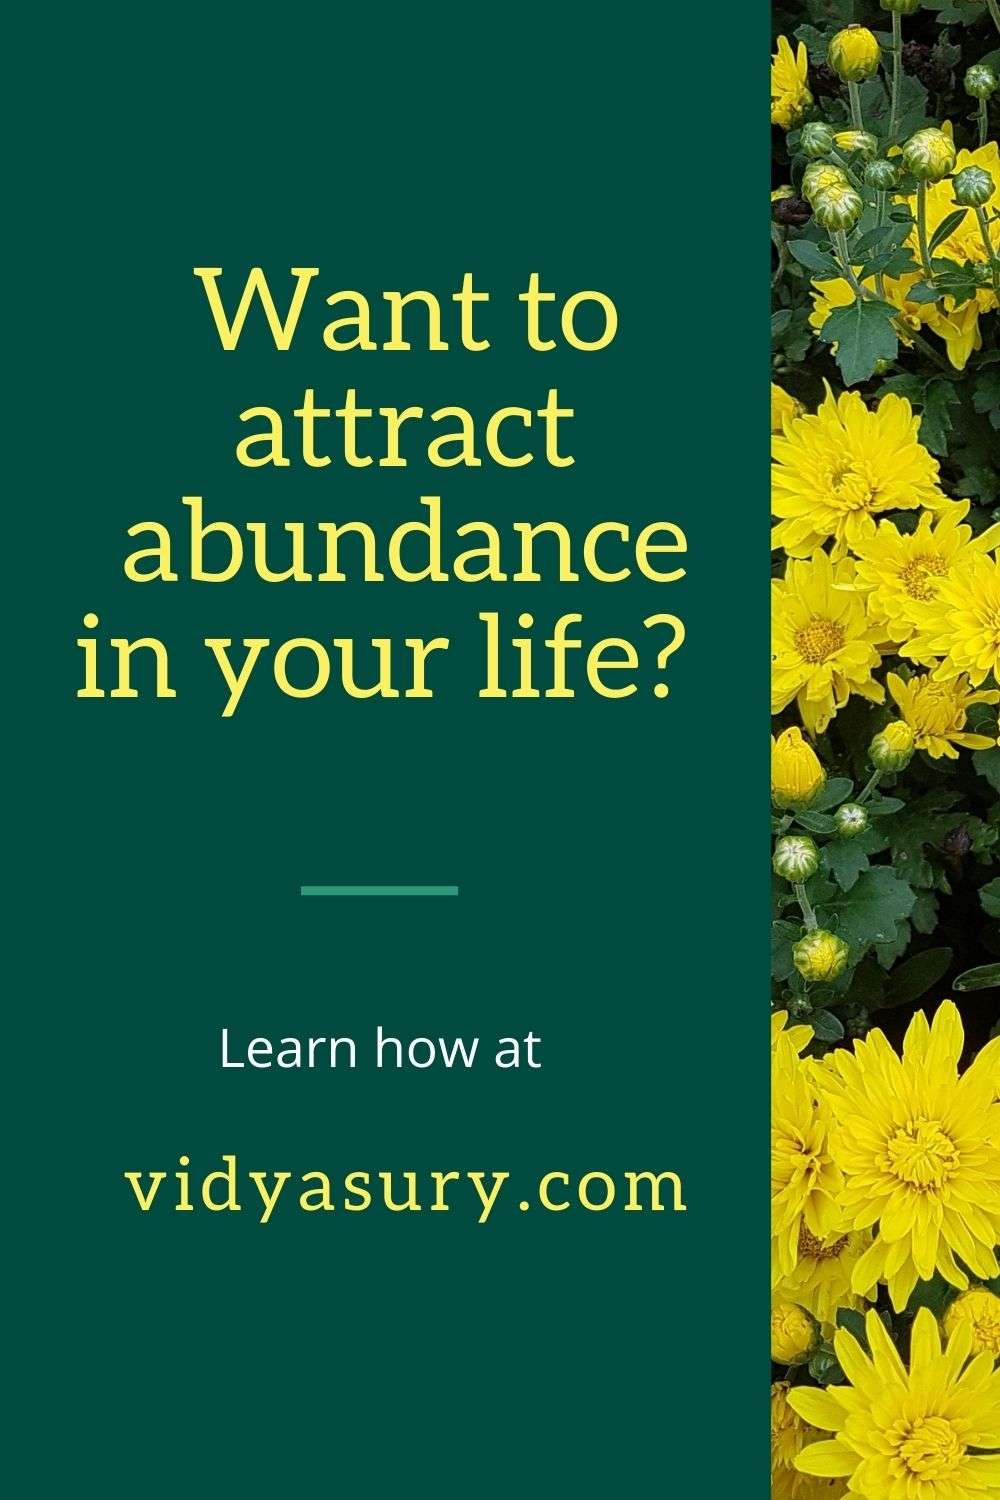 Want to attract abundance in your life